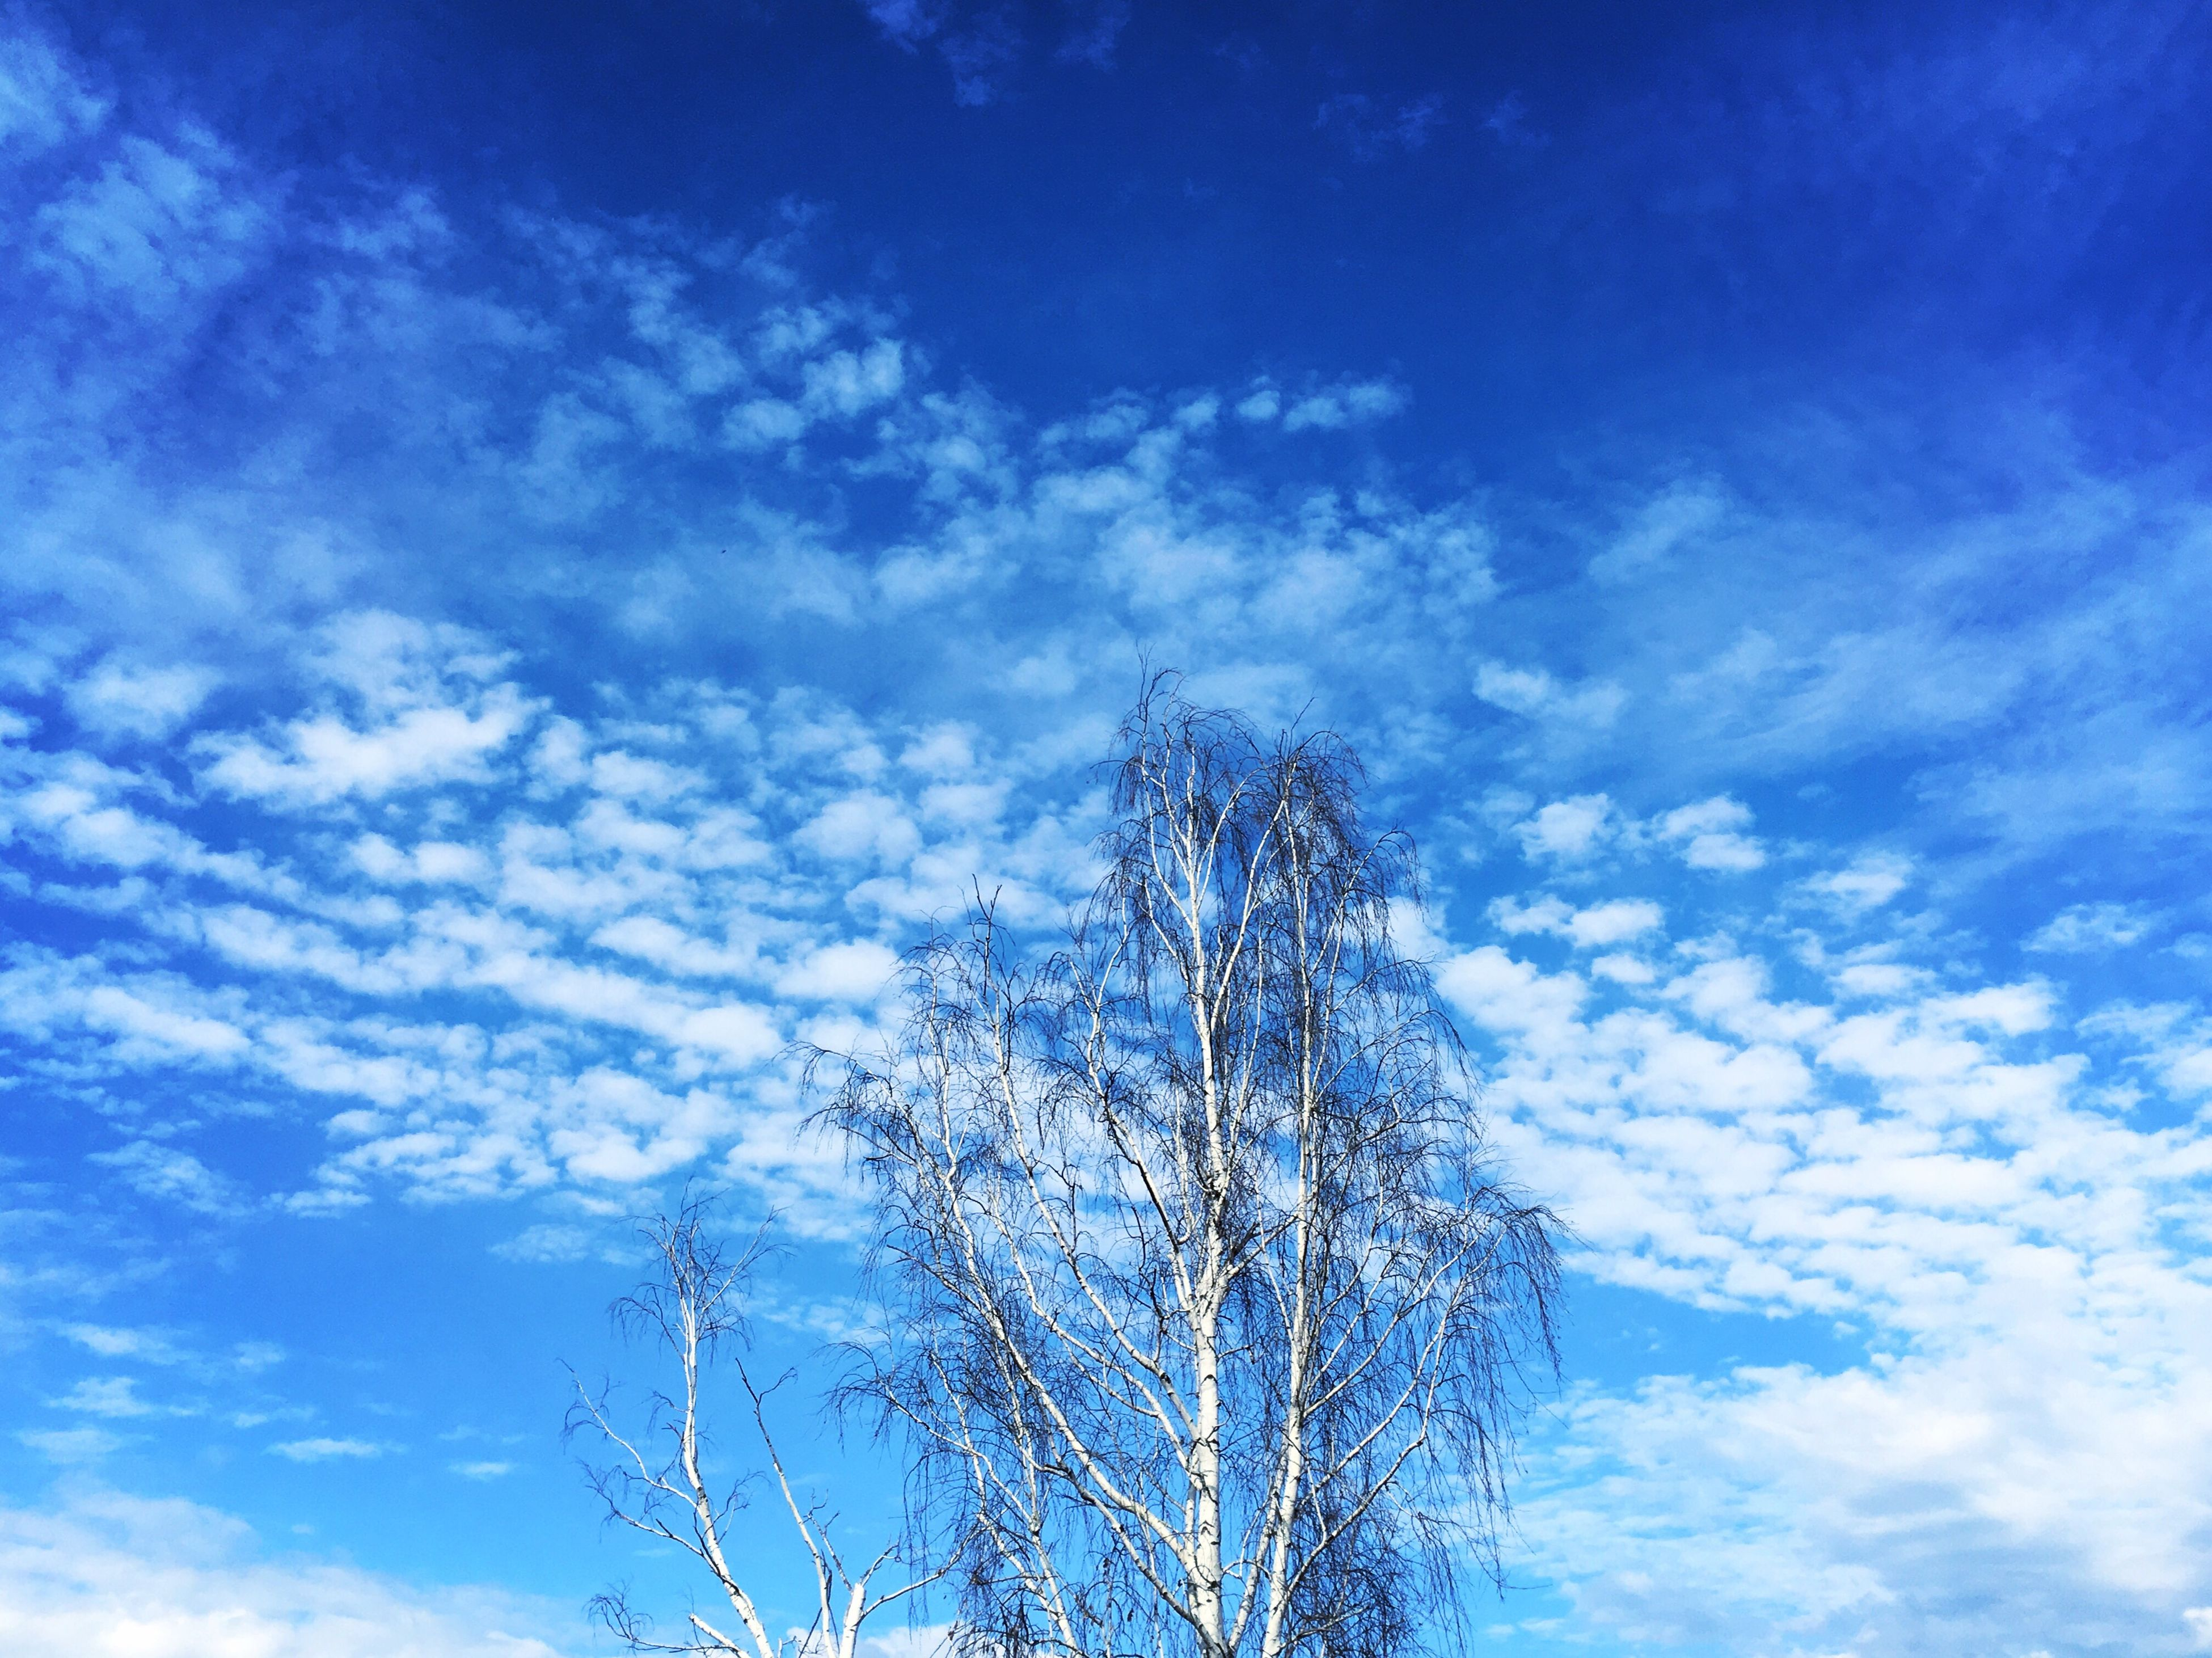 low angle view, sky, blue, bare tree, nature, tranquility, cloud - sky, beauty in nature, tree, cloud, branch, growth, silhouette, scenics, outdoors, tranquil scene, day, no people, power line, cloudy